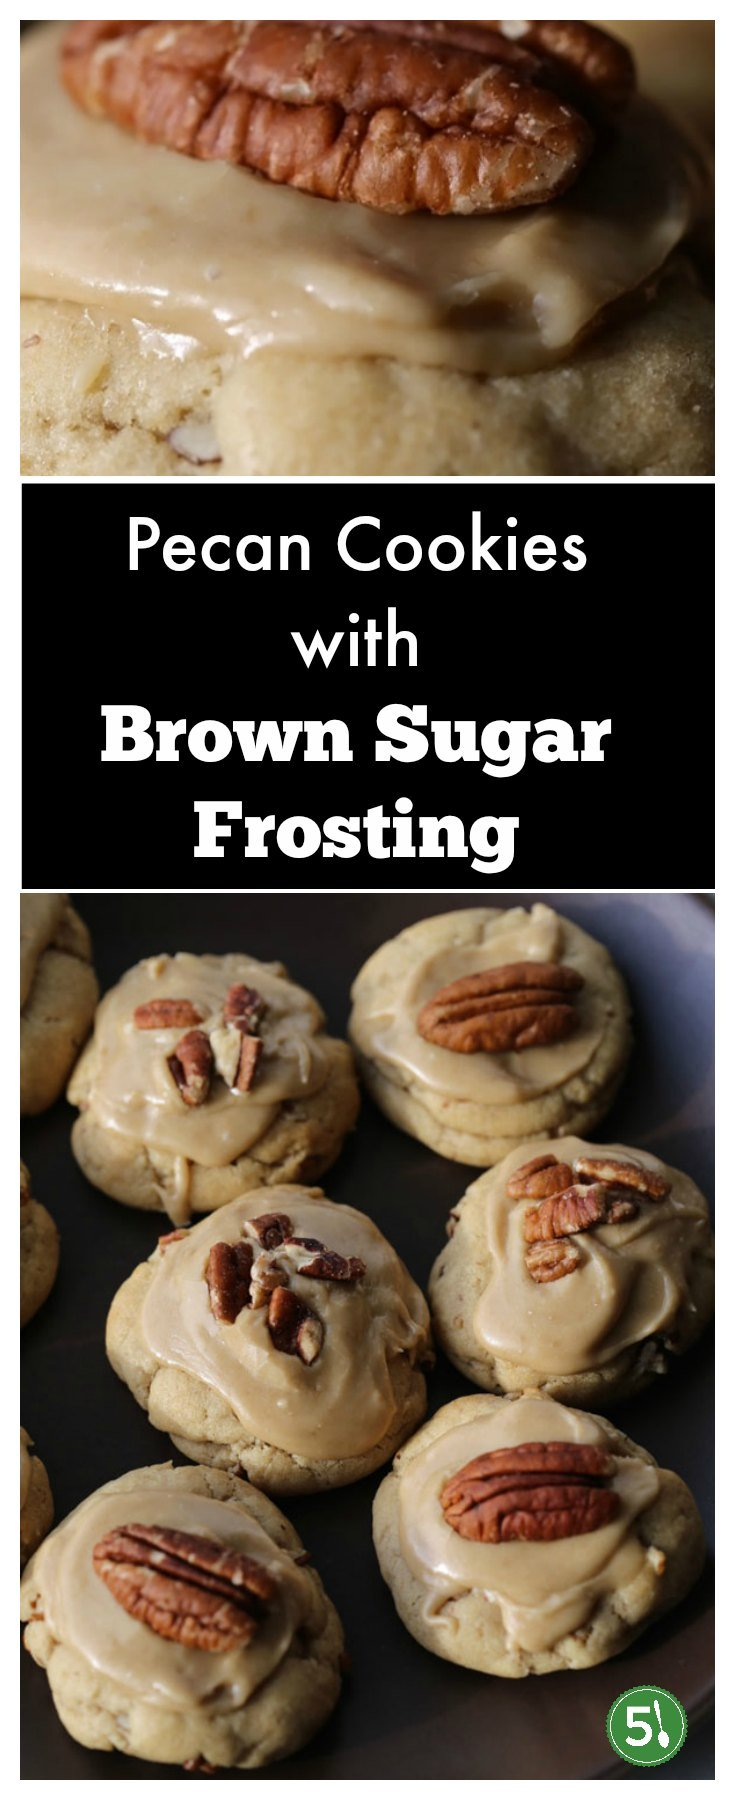 These easy Pecan cookies with brown sugar frosting are melt in your mouth delicious.   I love pecan cookies recipes, especially for Christmas, and this has is one of my family's new favorites.